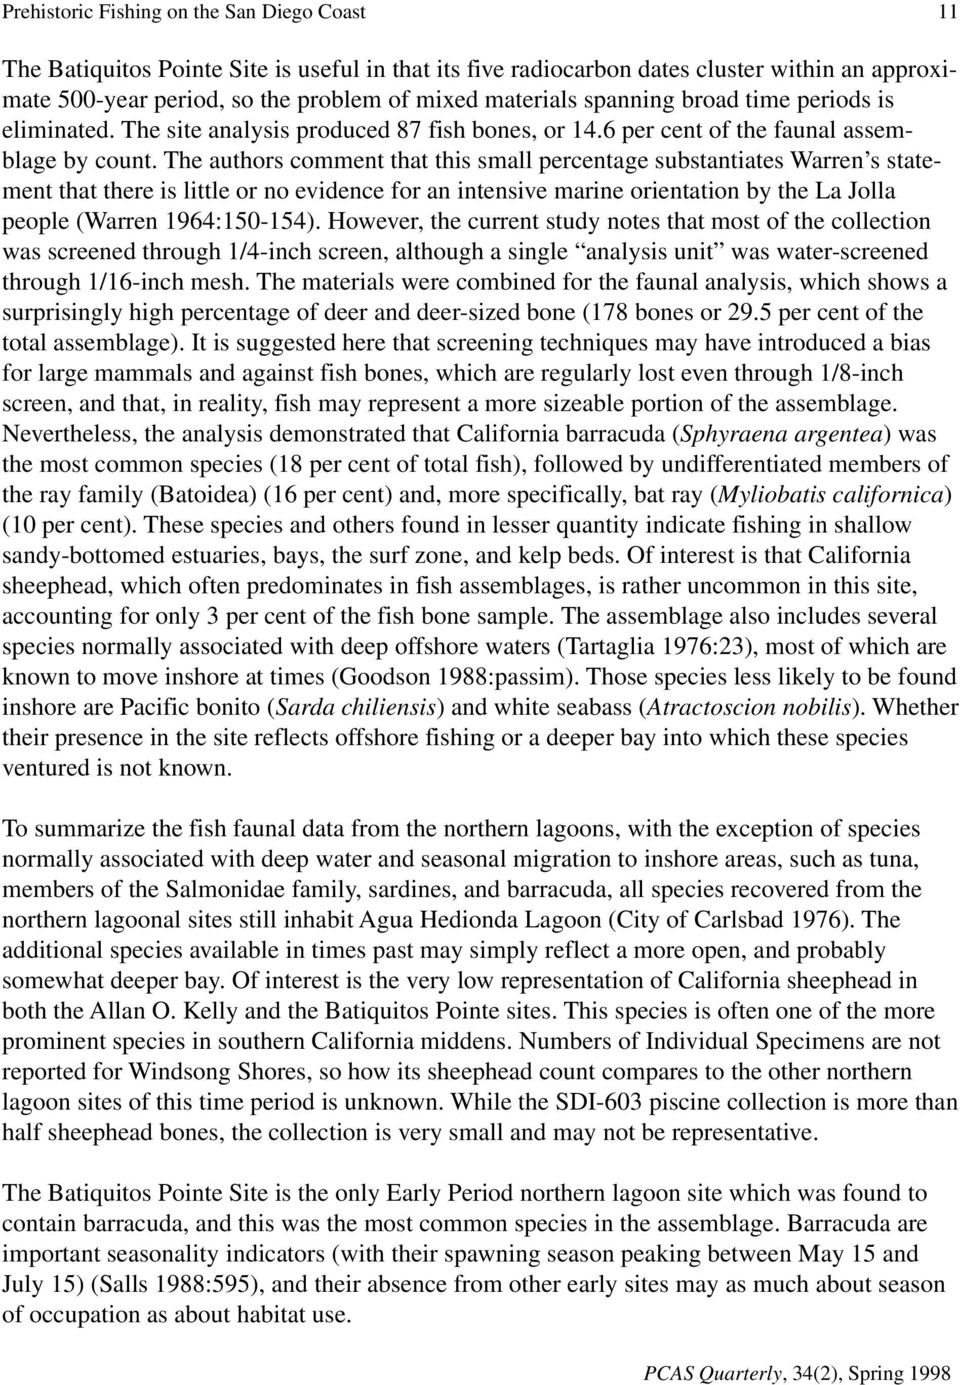 The authors comment that this small percentage substantiates Warren s statement that there is little or no evidence for an intensive marine orientation by the La Jolla people (Warren 1964:150-154).